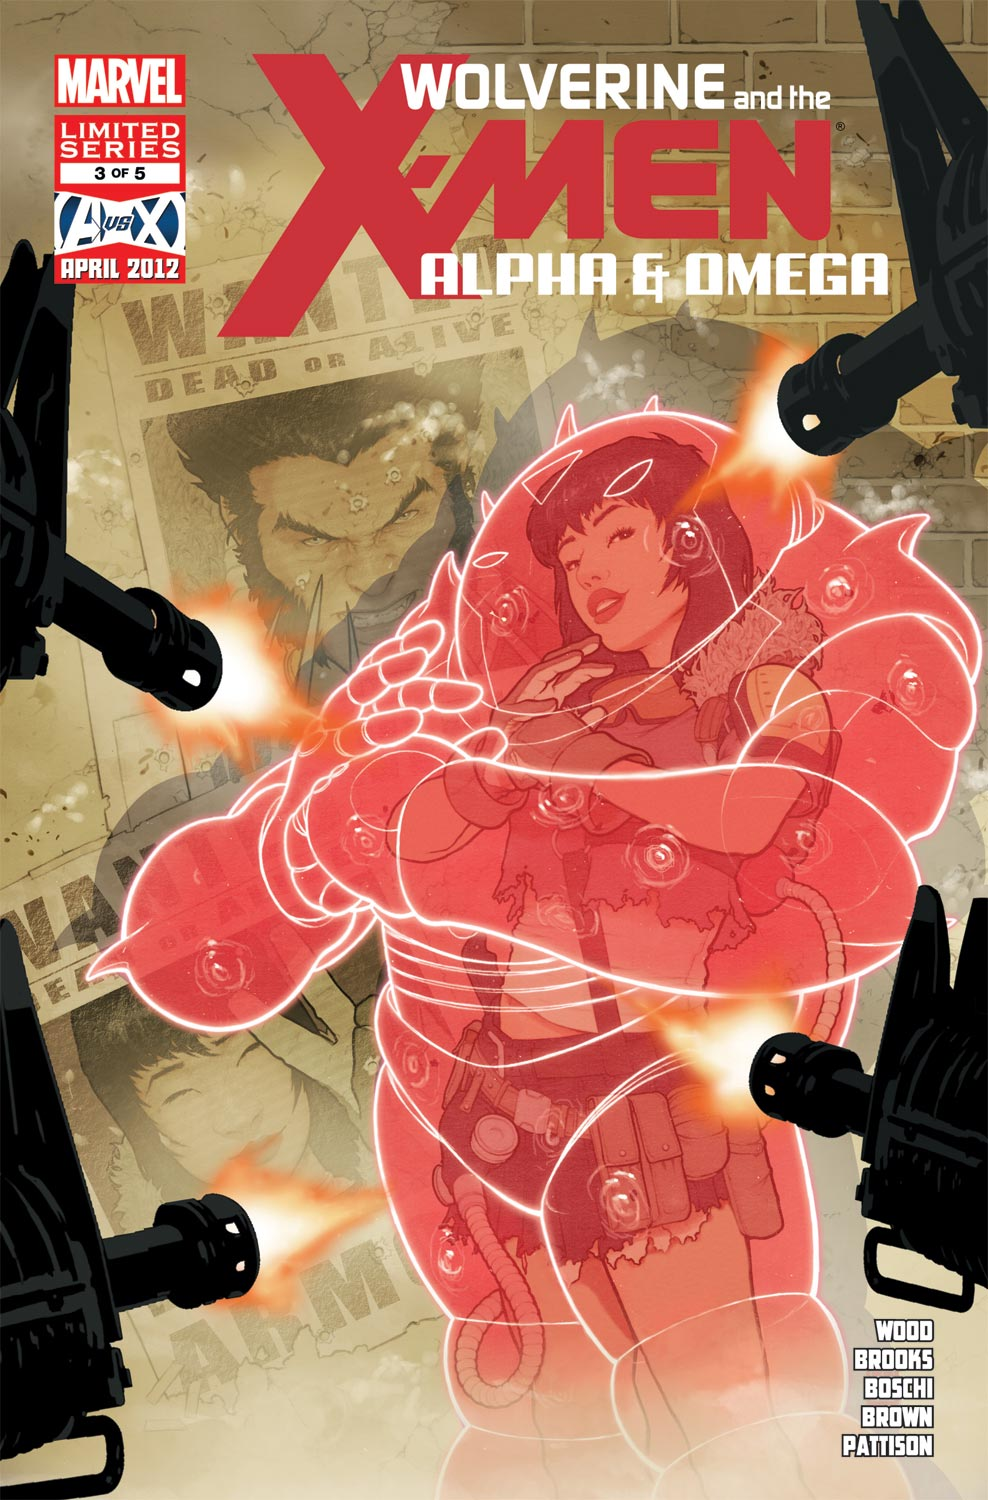 Wolverine & the X-Men: Alpha & Omega (2011) #3